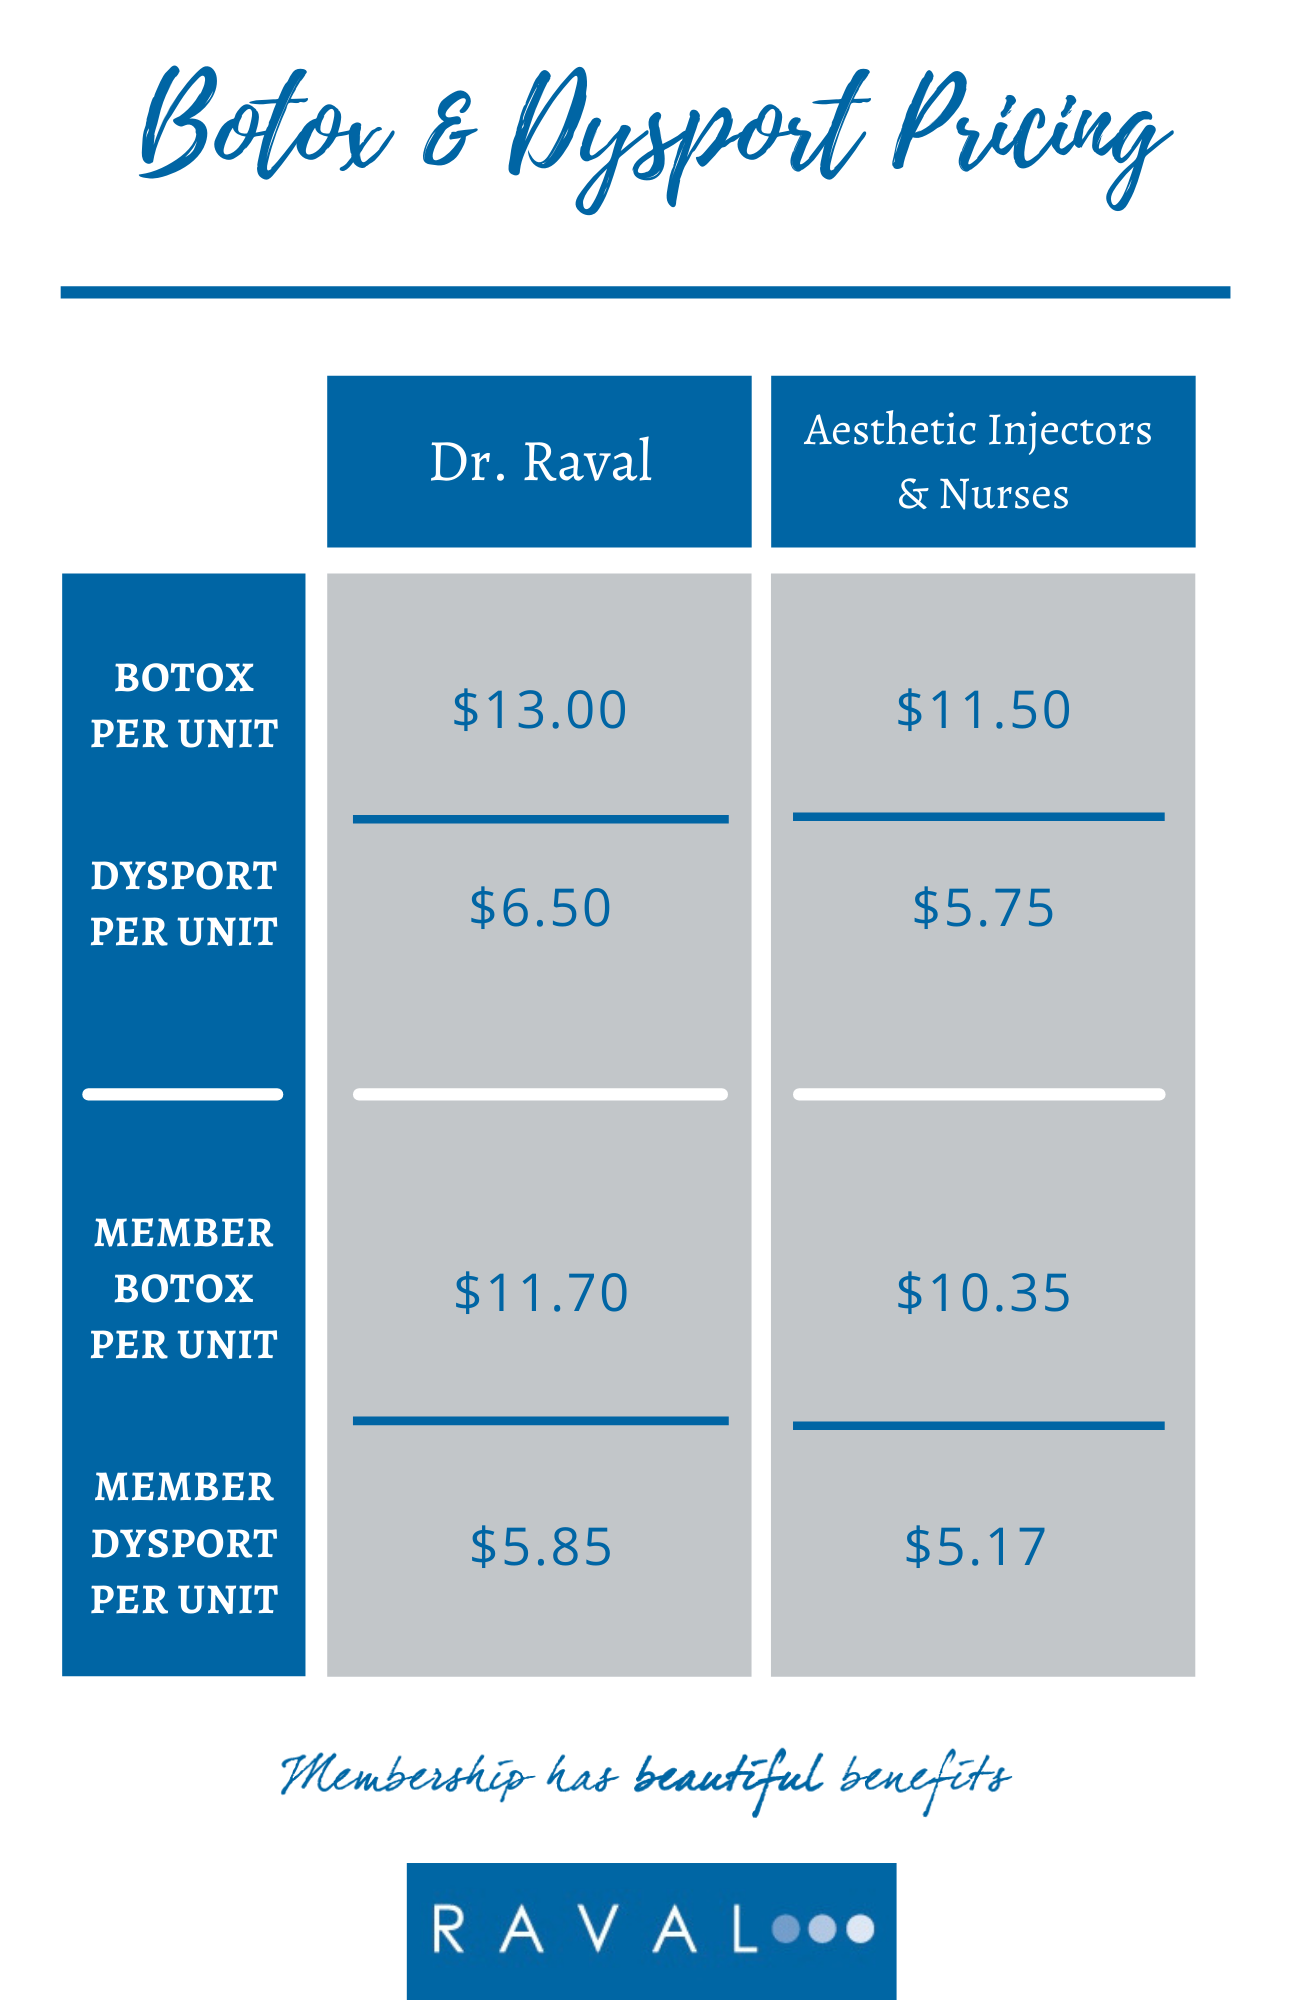 Copy of Pricing Chart for Botox & Dysport